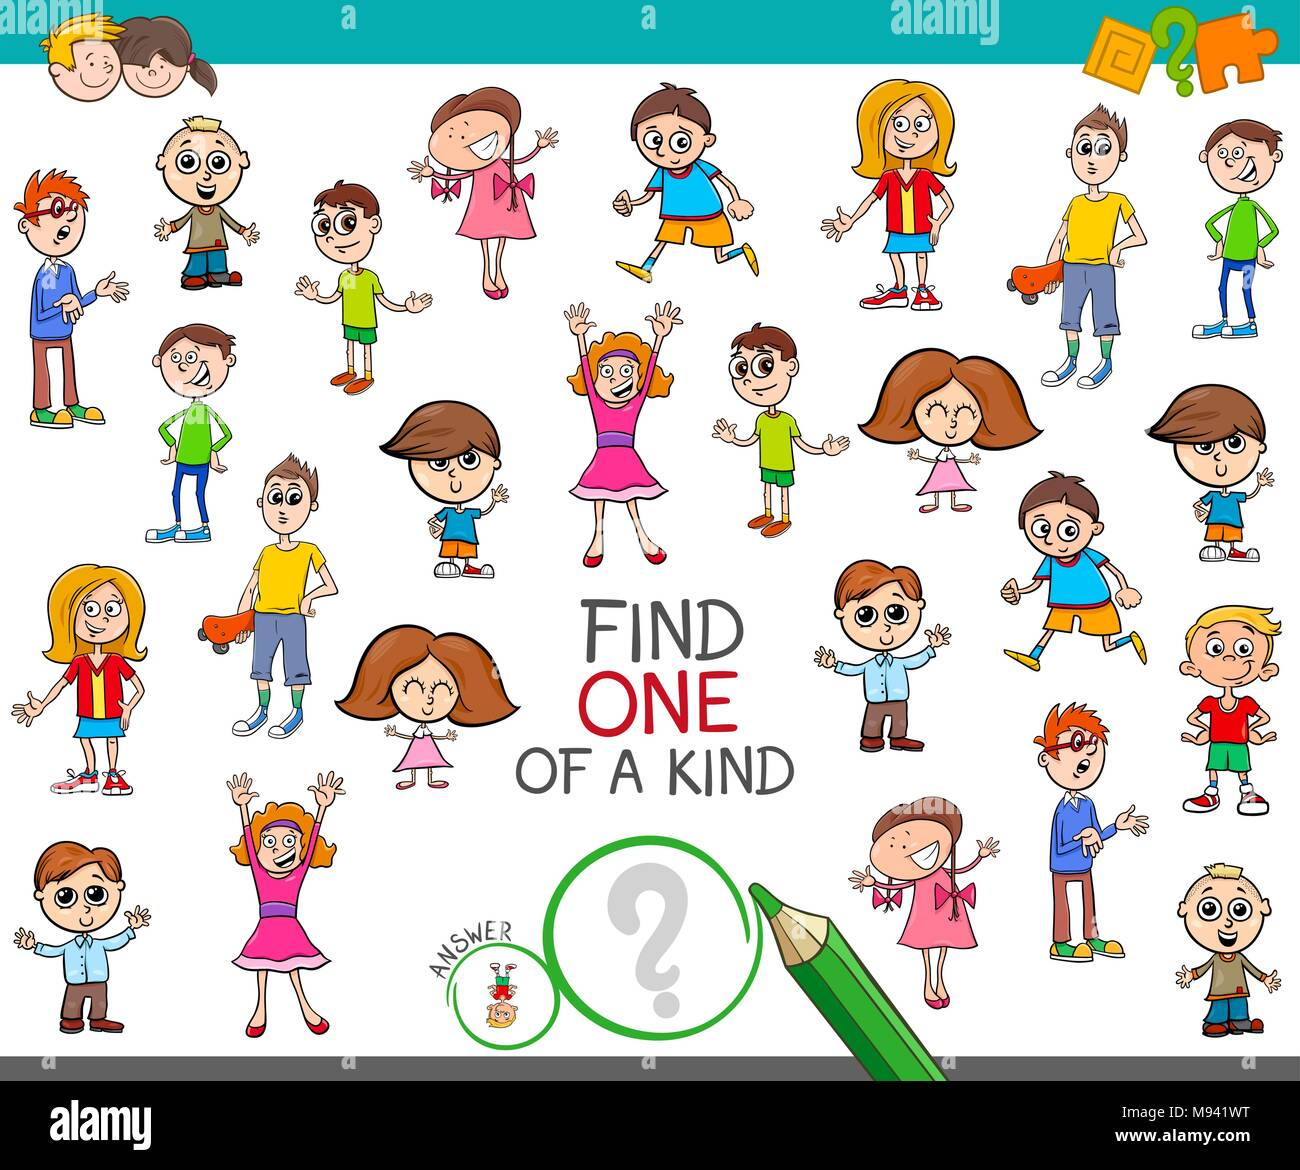 Cartoon Illustration Of Find One Of A Kind Picture